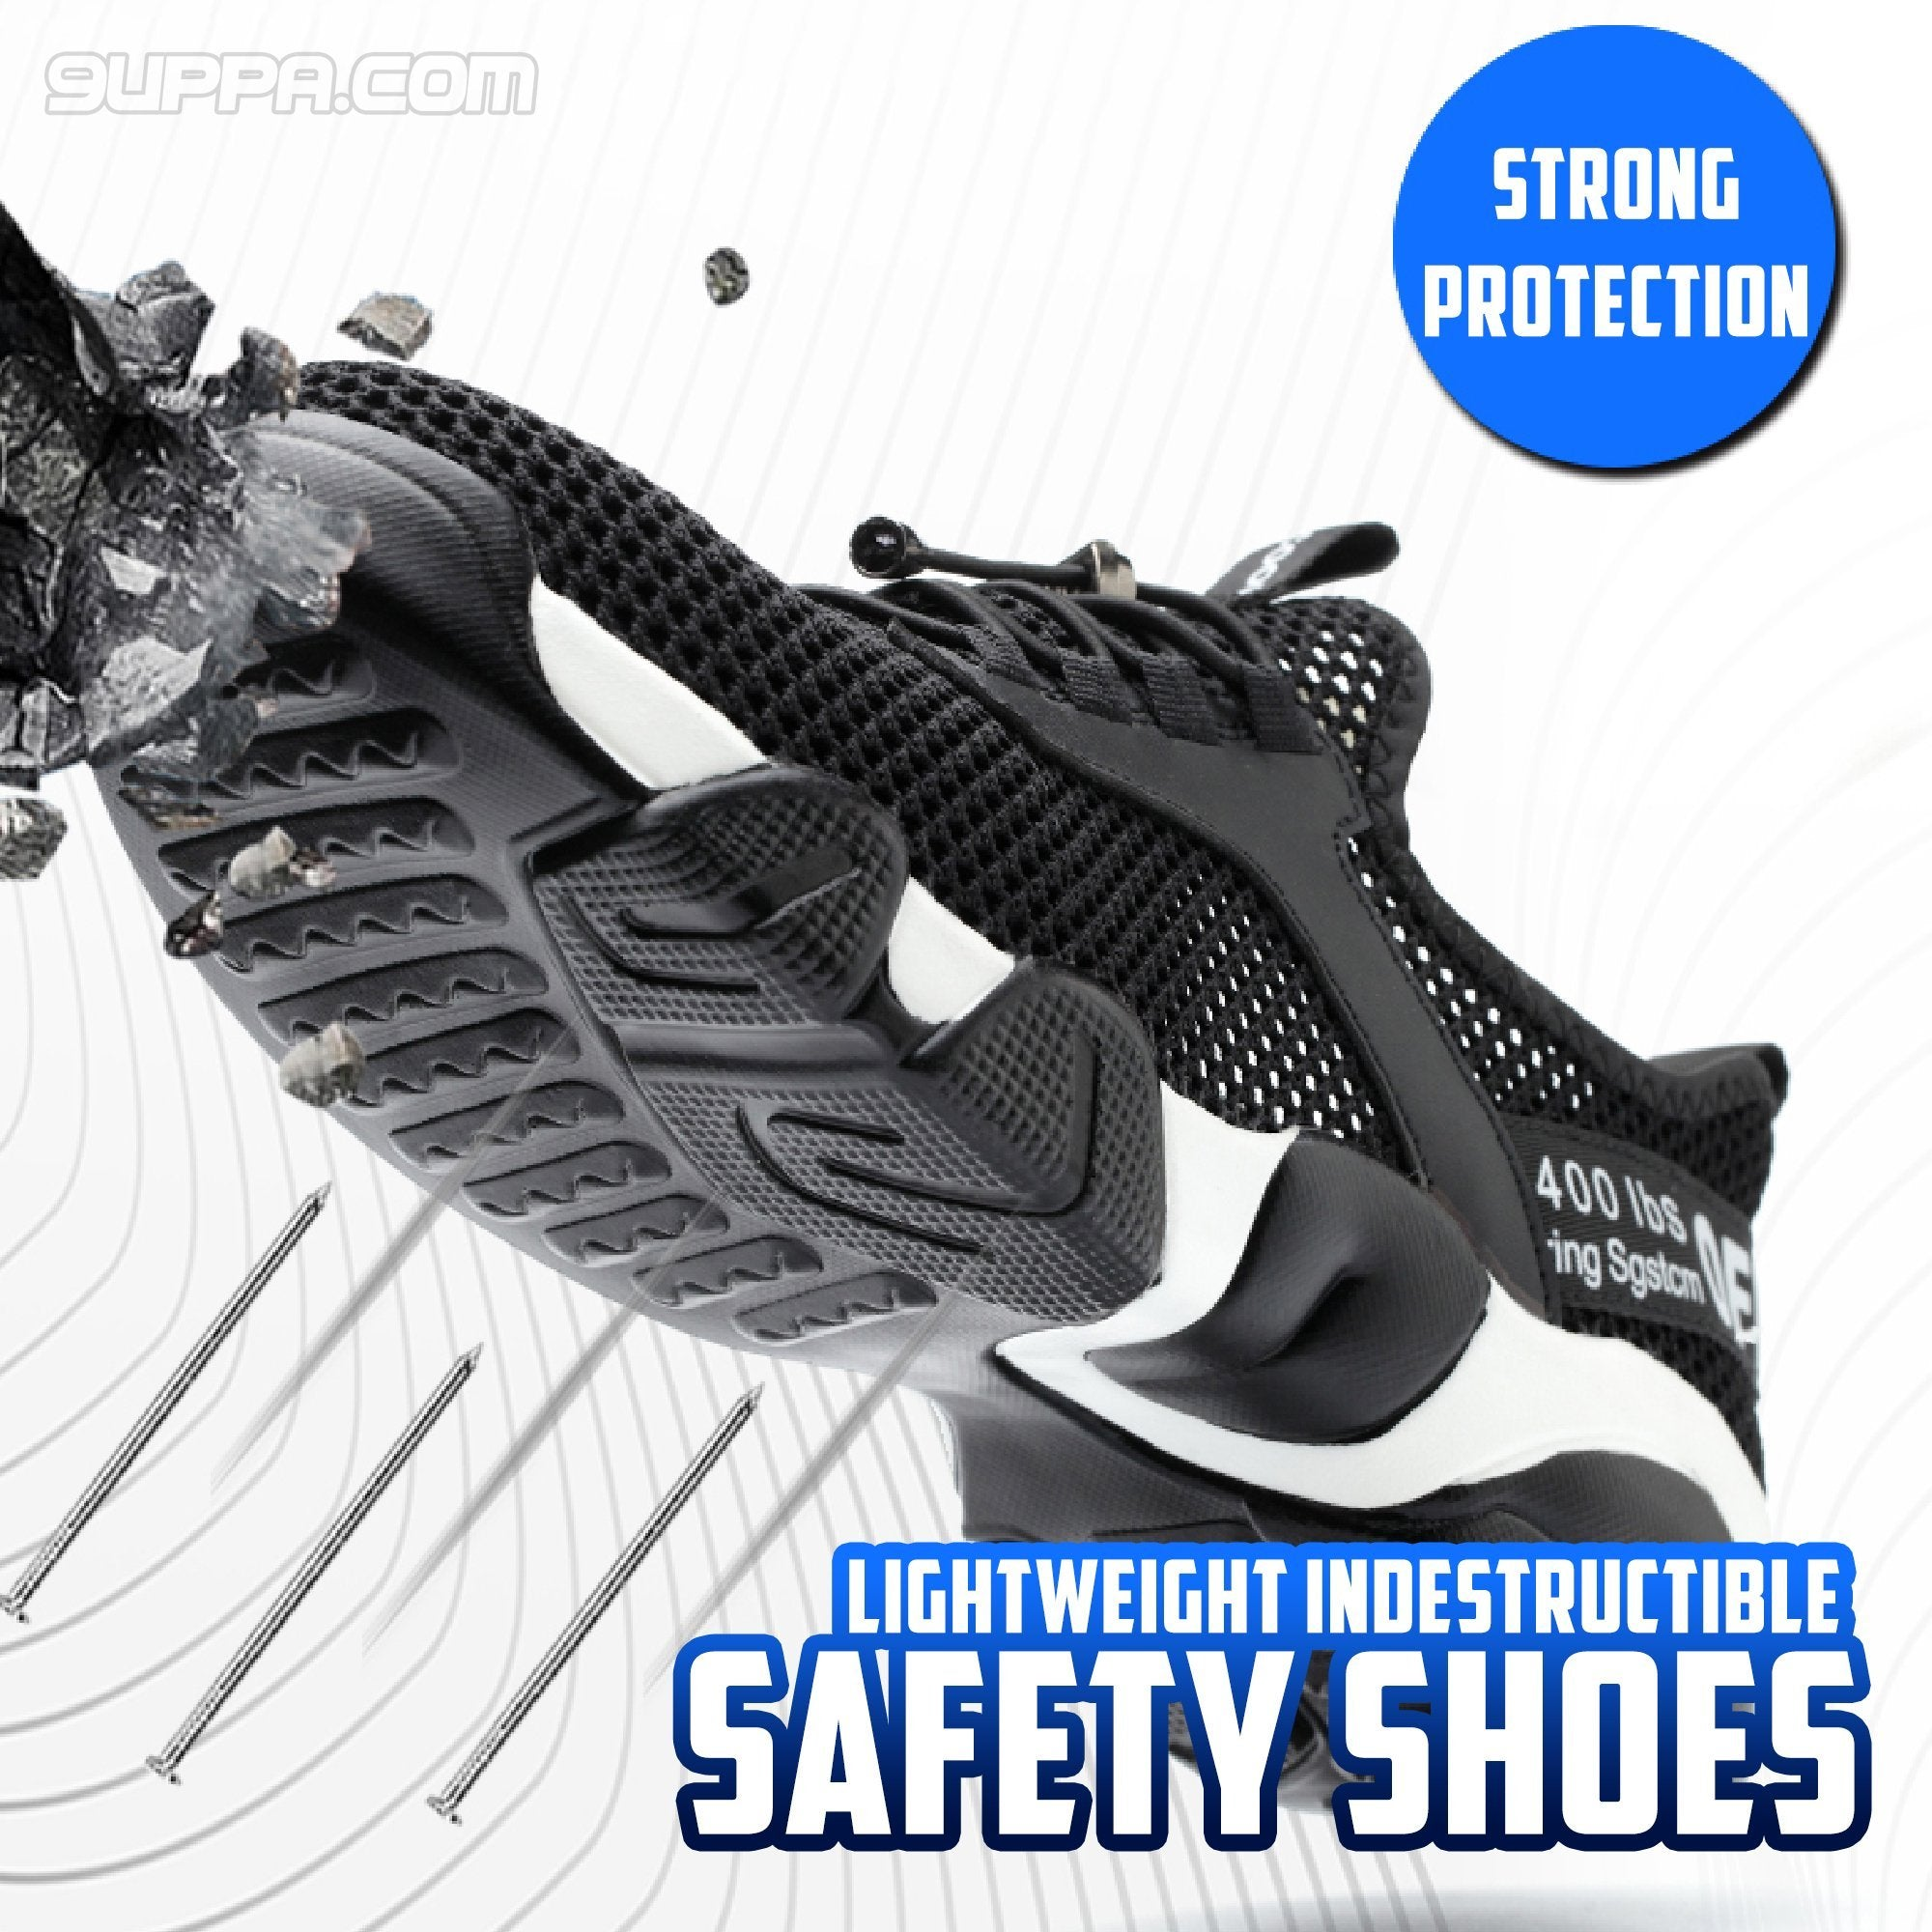 Lightweight Indestructible Safety Shoes